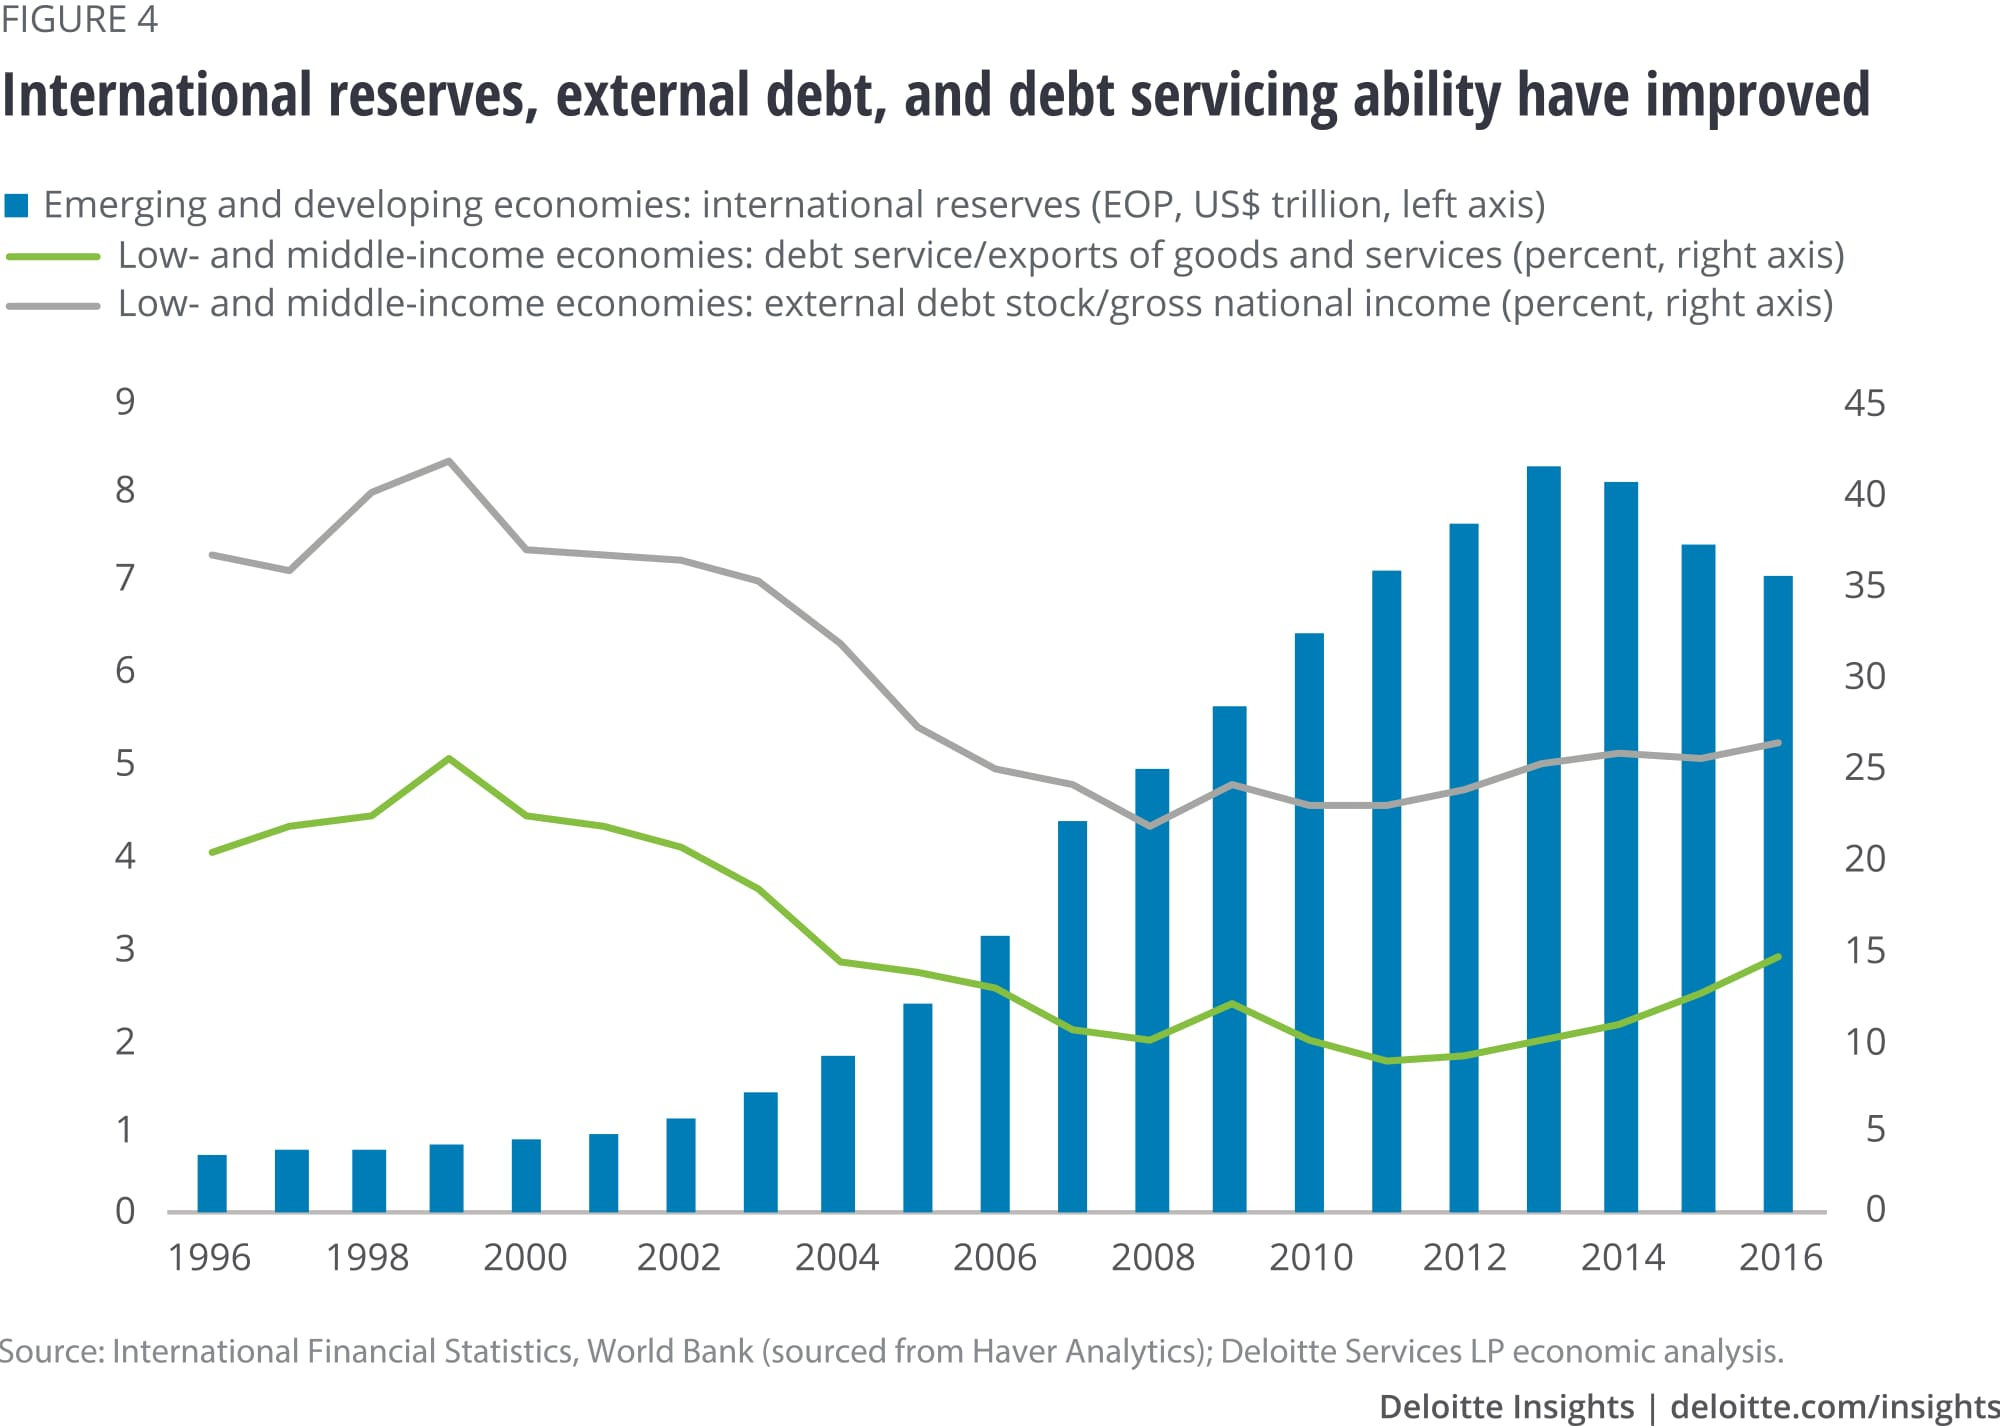 International reserves, external debt, and debt servicing ability have improved